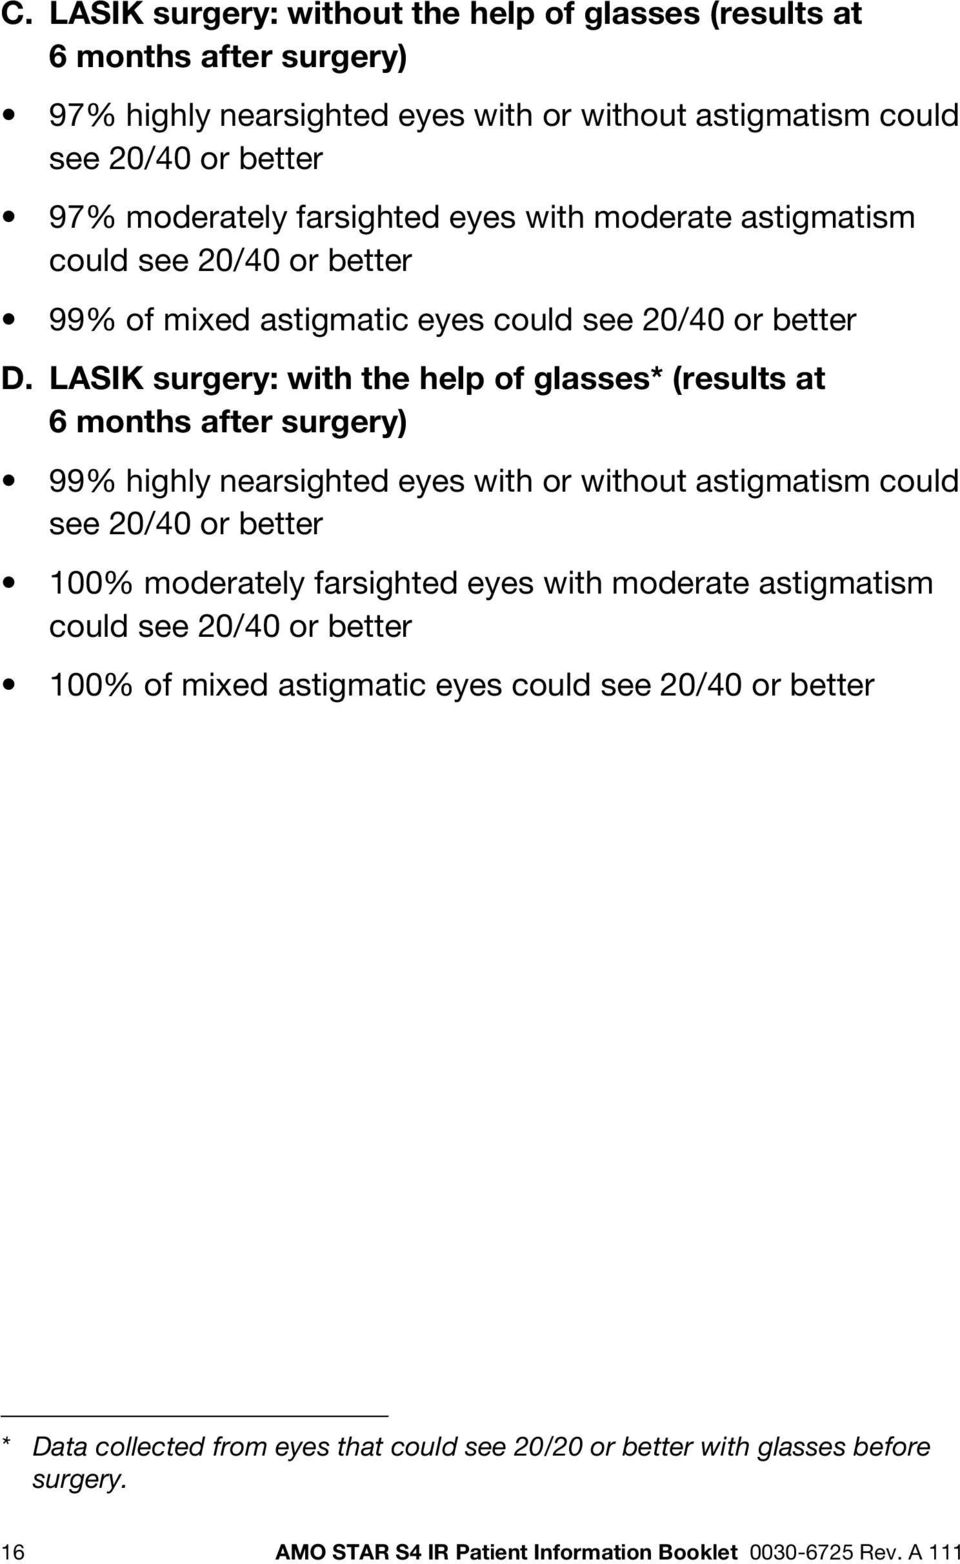 LASIK surgery: with the help of glasses* (results at 6 months after surgery) 99% highly nearsighted eyes with or without astigmatism could see 20/40 or better 100% moderately farsighted